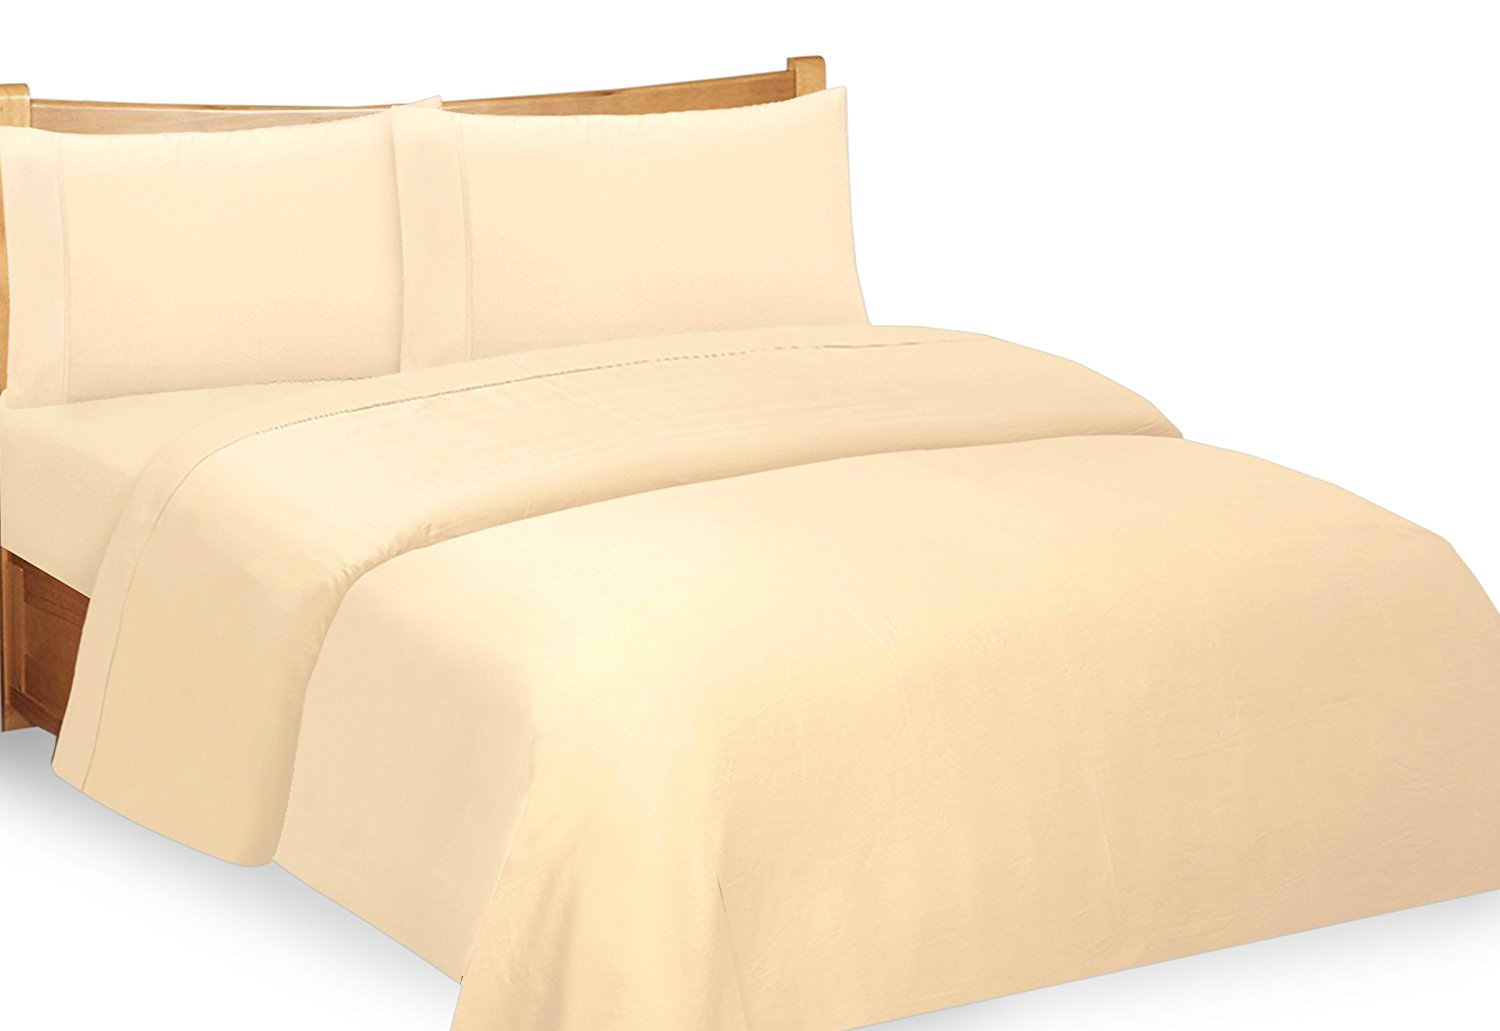 Bonne Nuit 500 Thread Count Hotel Collection Luxury Bedding Bed Sheets - Bestseller- Super Sale 100% Cotton Sateen - Wrinkle Resistant Sheet Set-Queen Size Solid Ivory Color